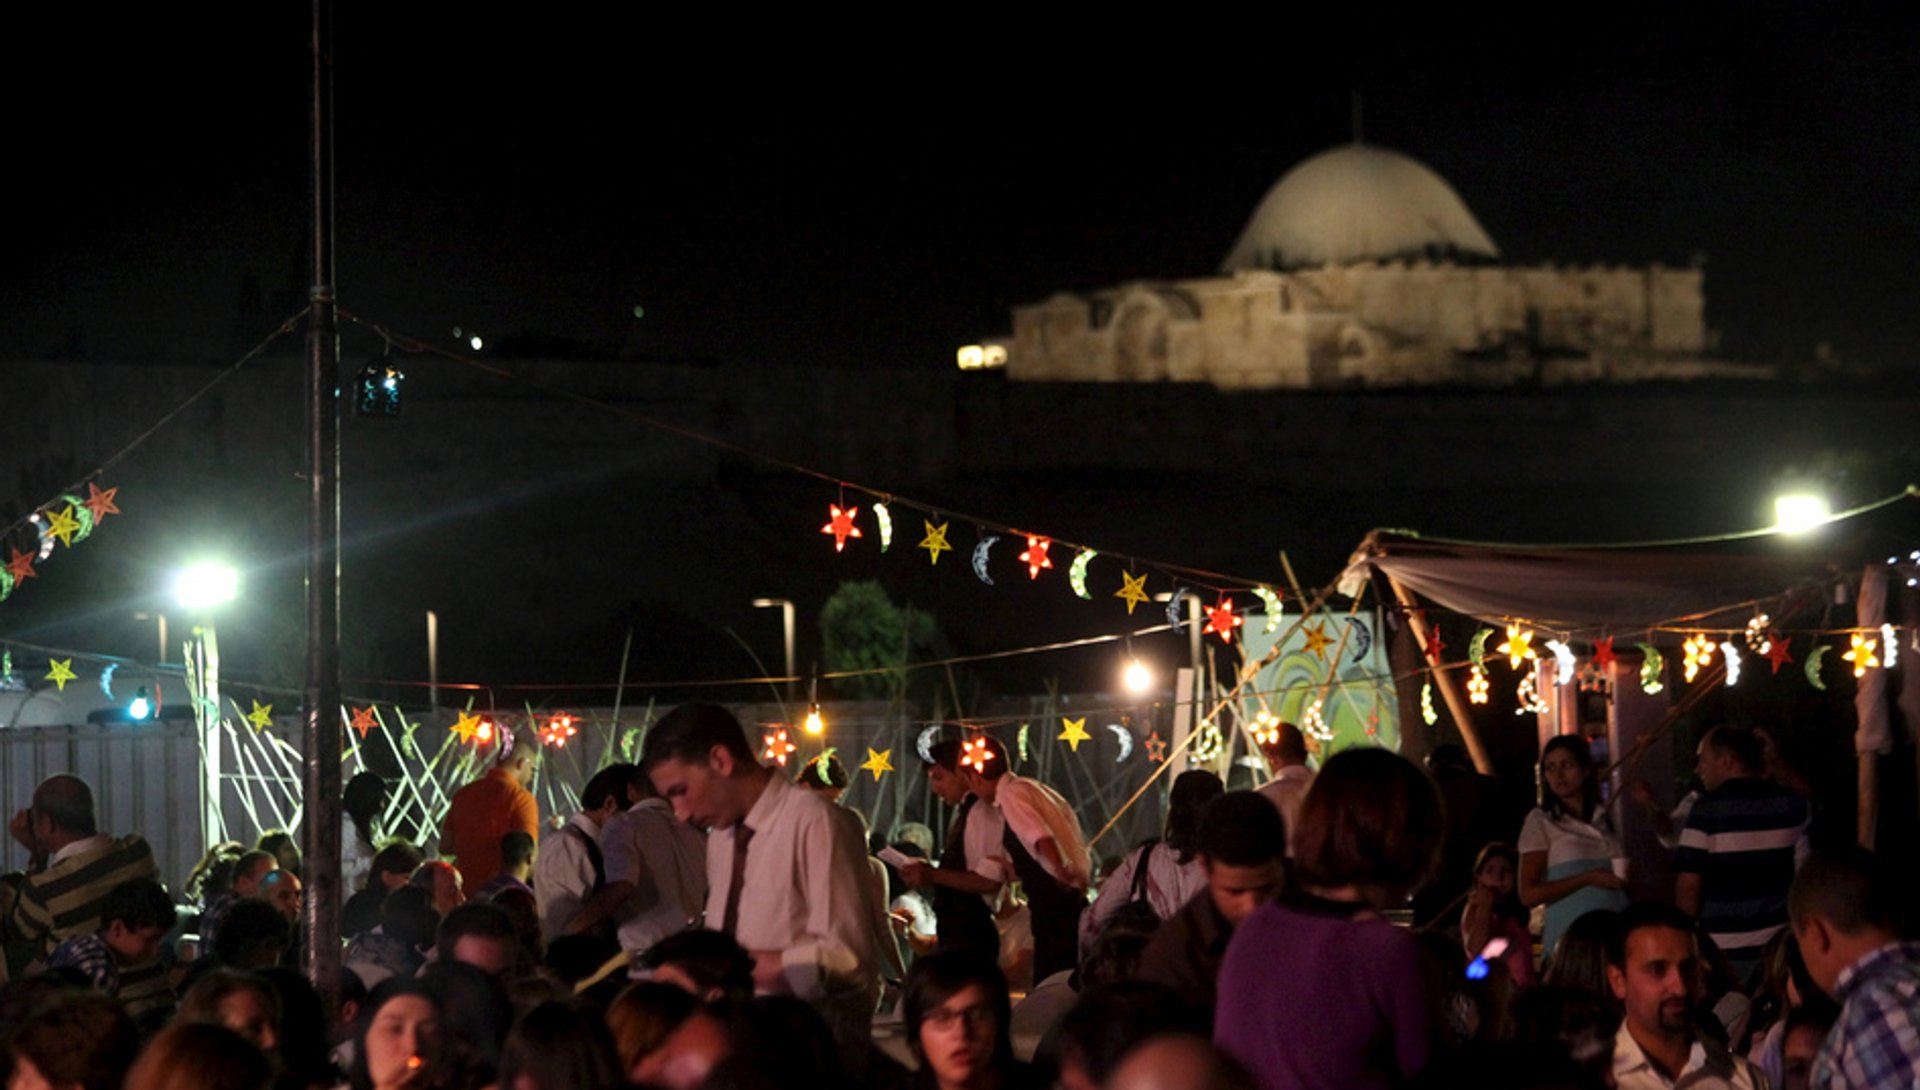 Citadel Nights in Jordan - Best Season